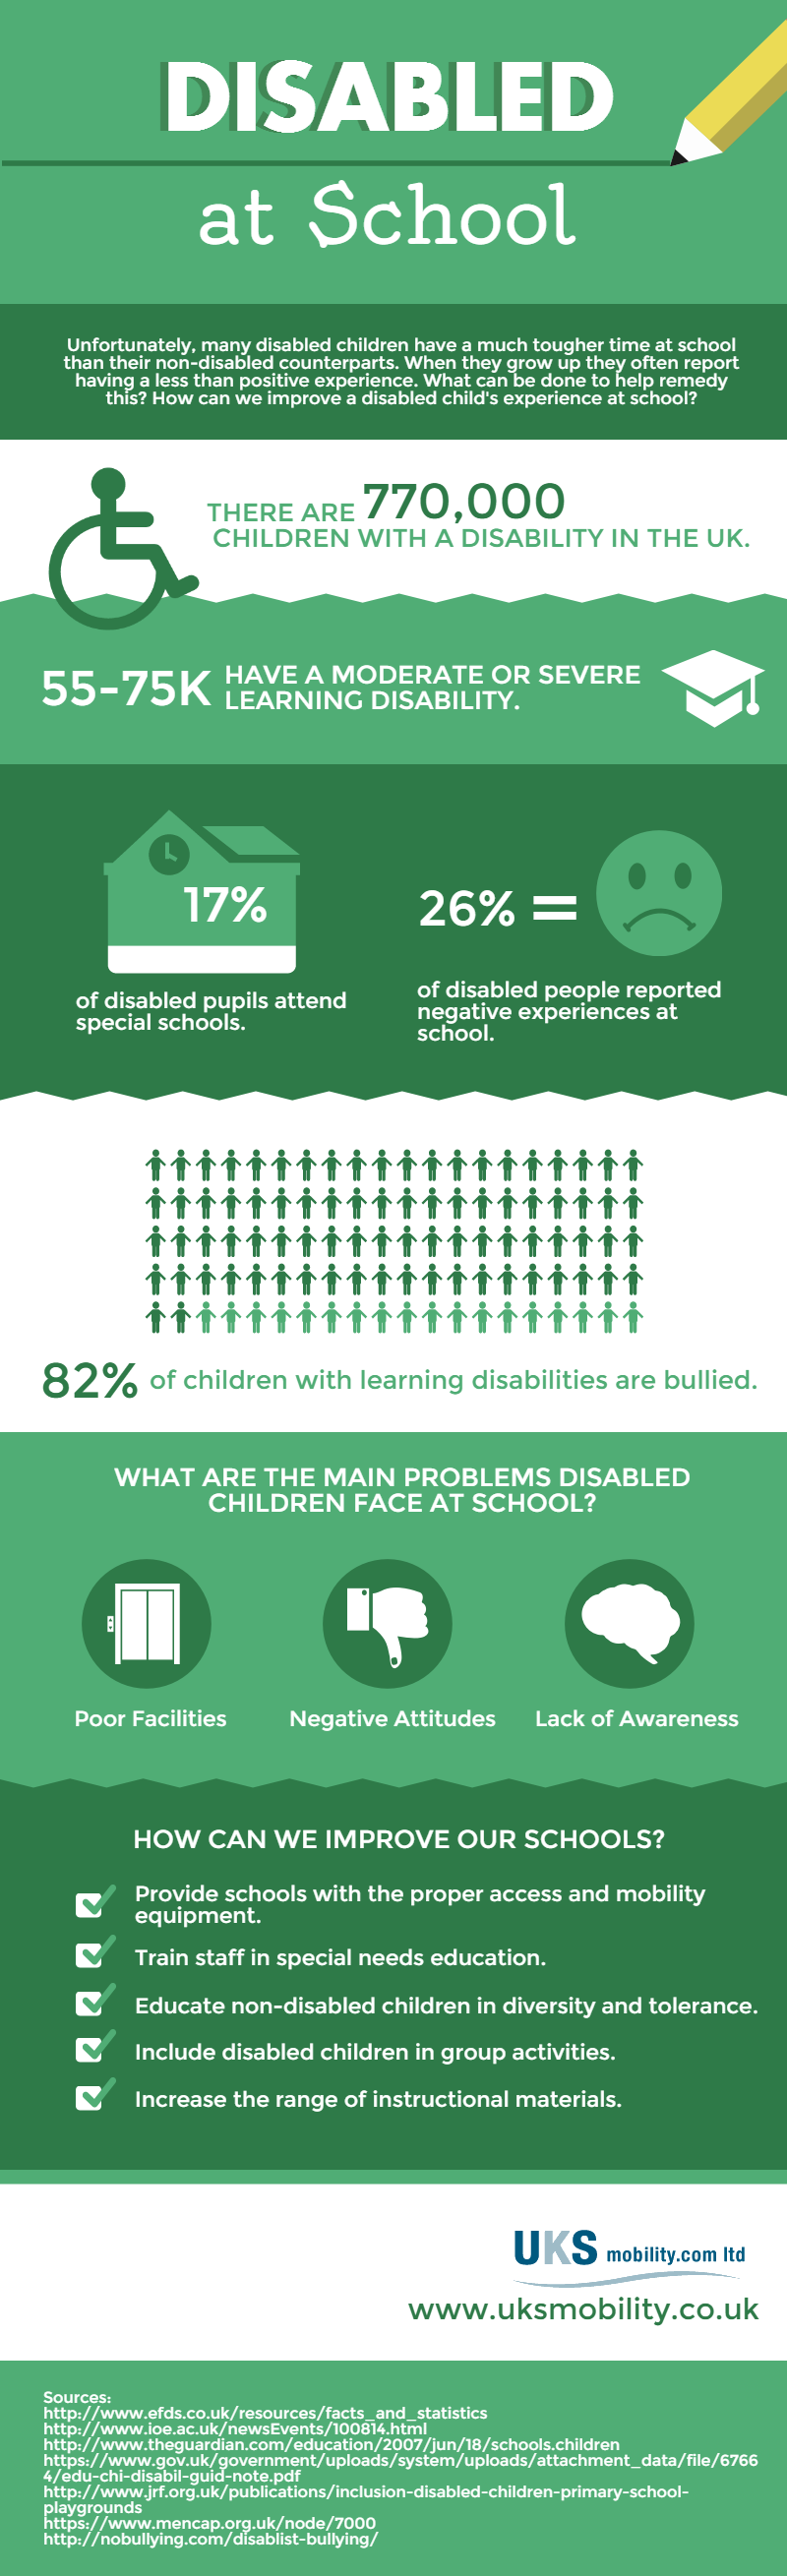 Helping a disabled child with a better experience at school